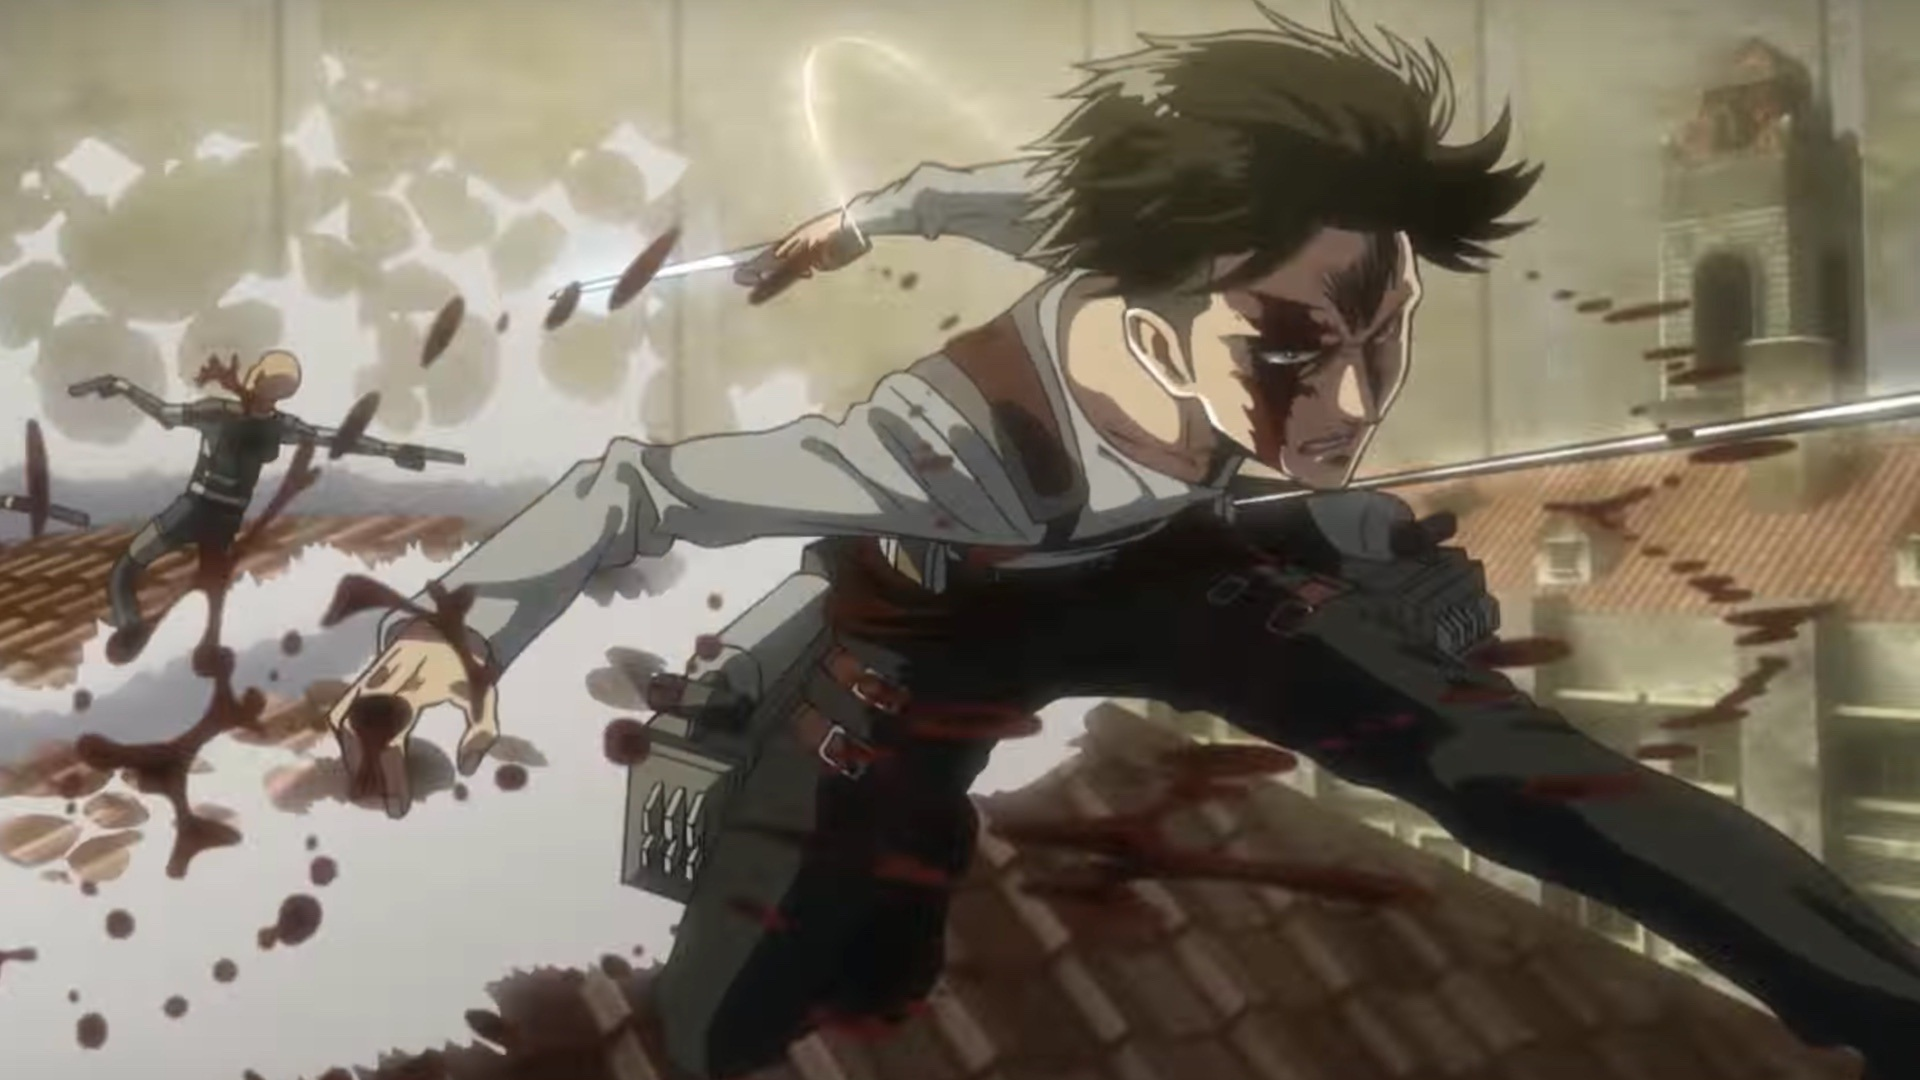 Attack On Titan Best Hd Wallpaper Attack On Titan Season 3 Pain 1920x1080 Download Hd Wallpaper Wallpapertip